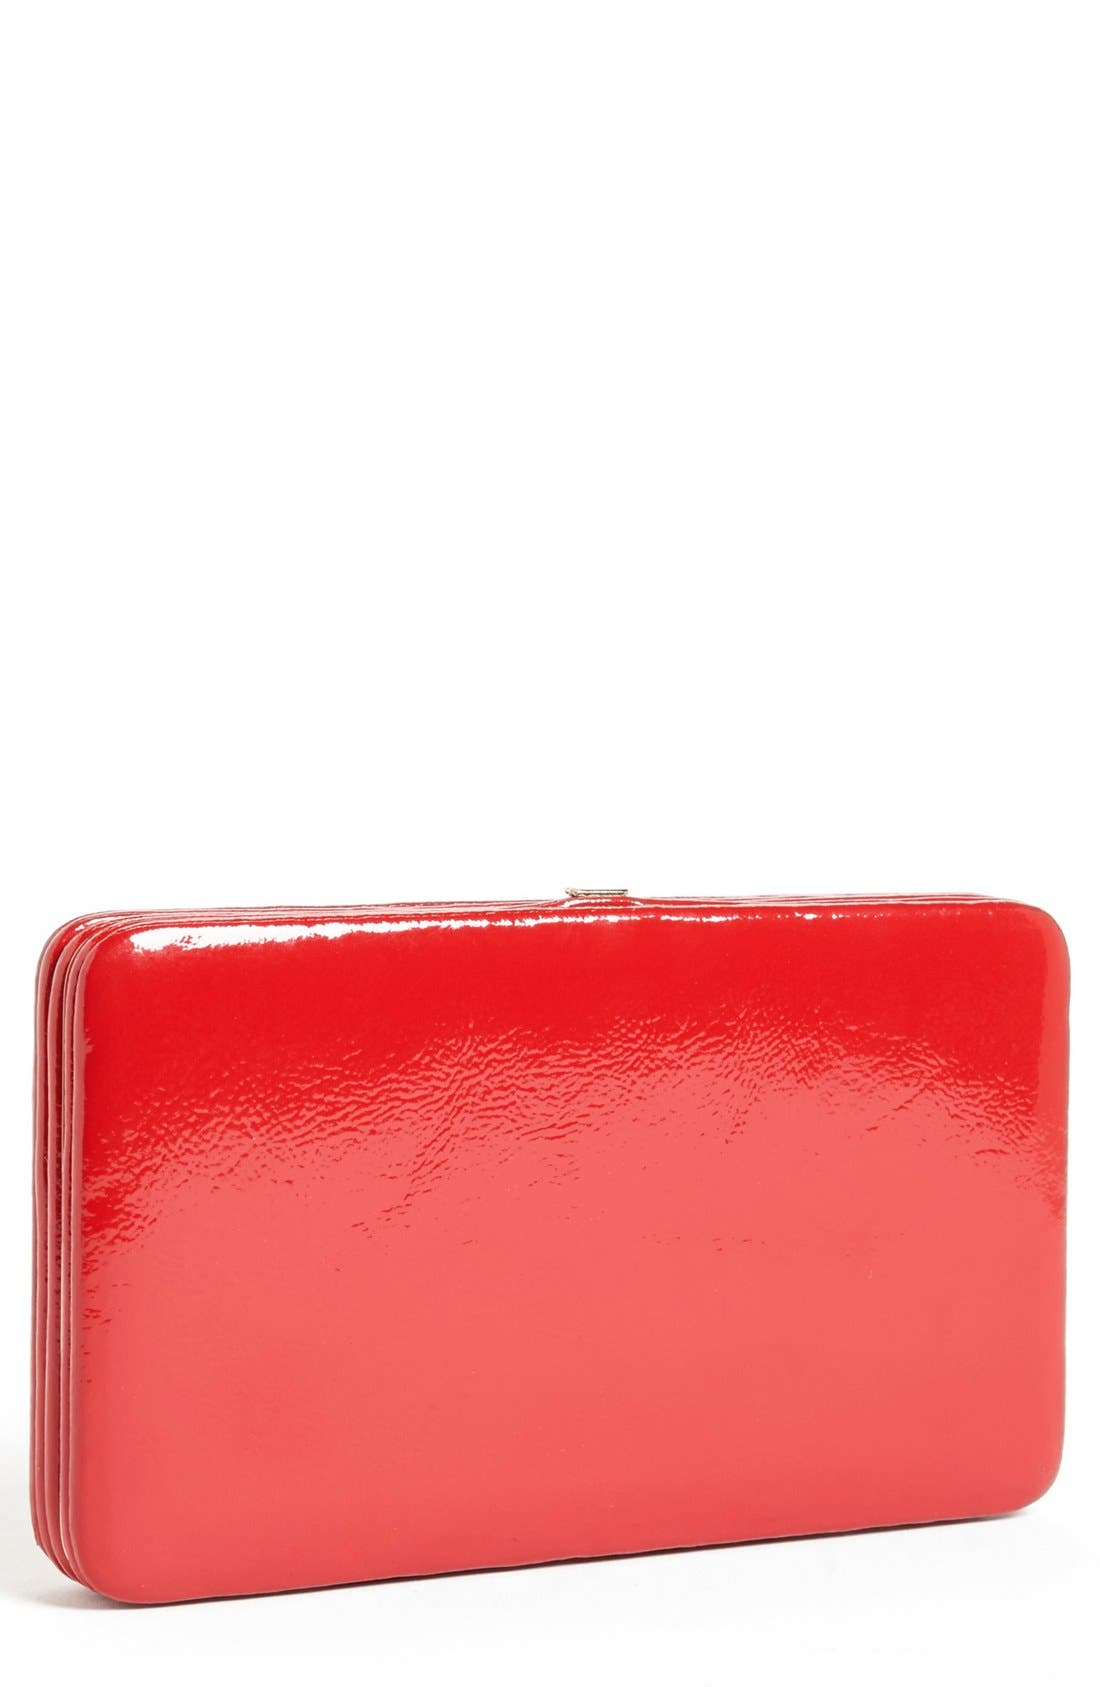 Alternate Image 1 Selected - Halogen® Patent Leather Frame Clutch